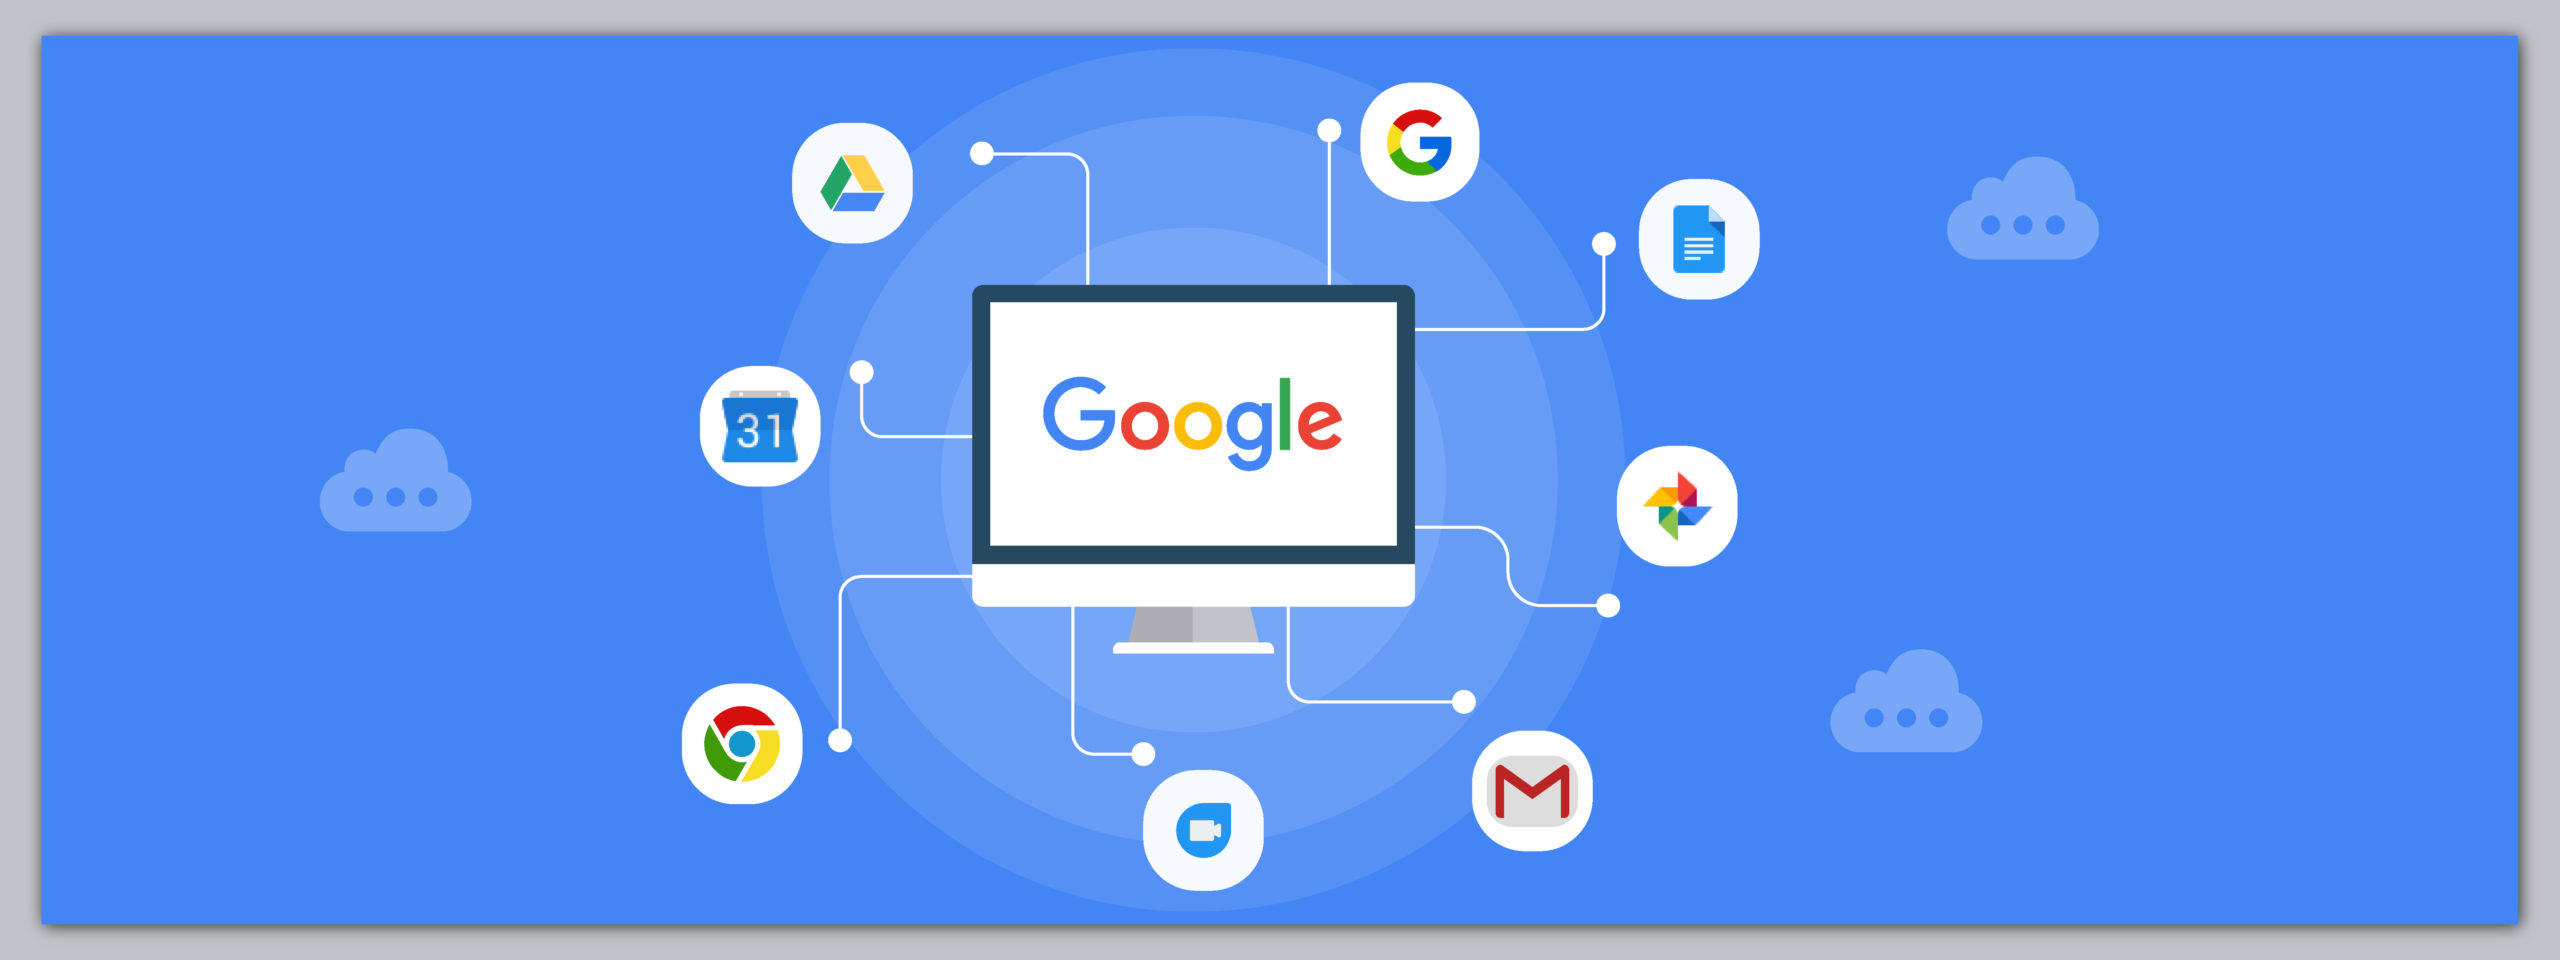 How to free up space on my Google account   Computing Australia